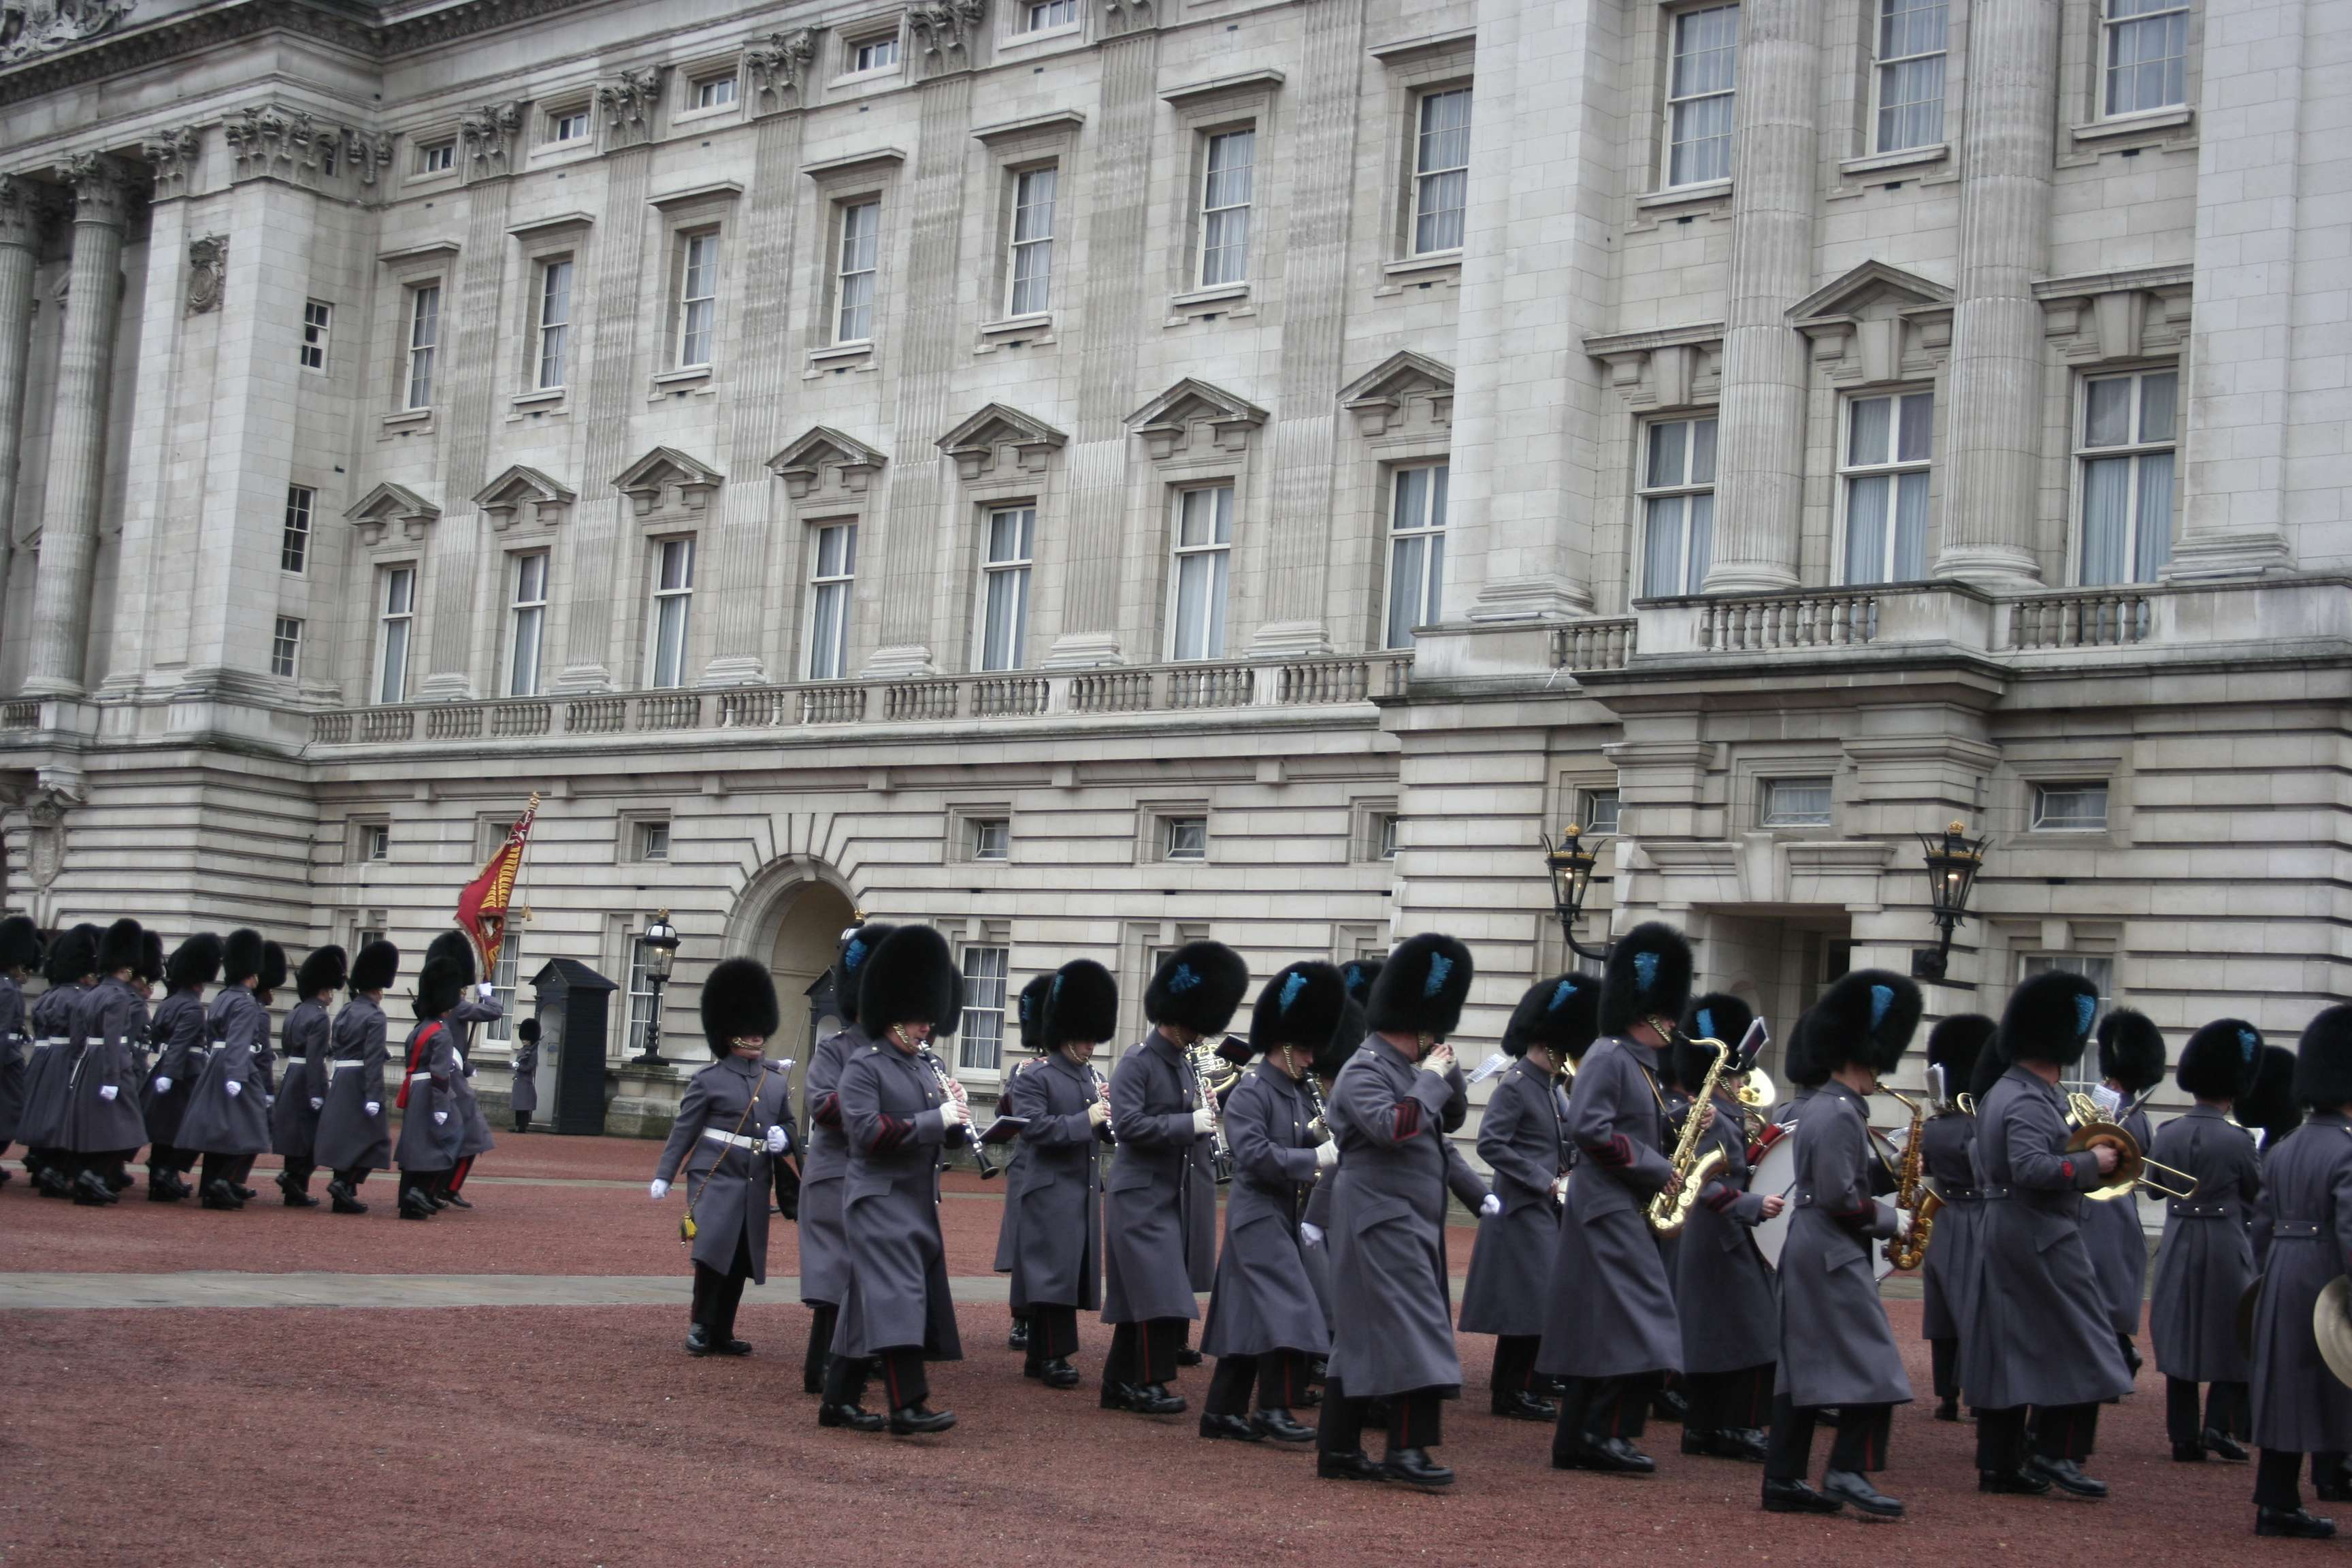 London_0136 changing guards